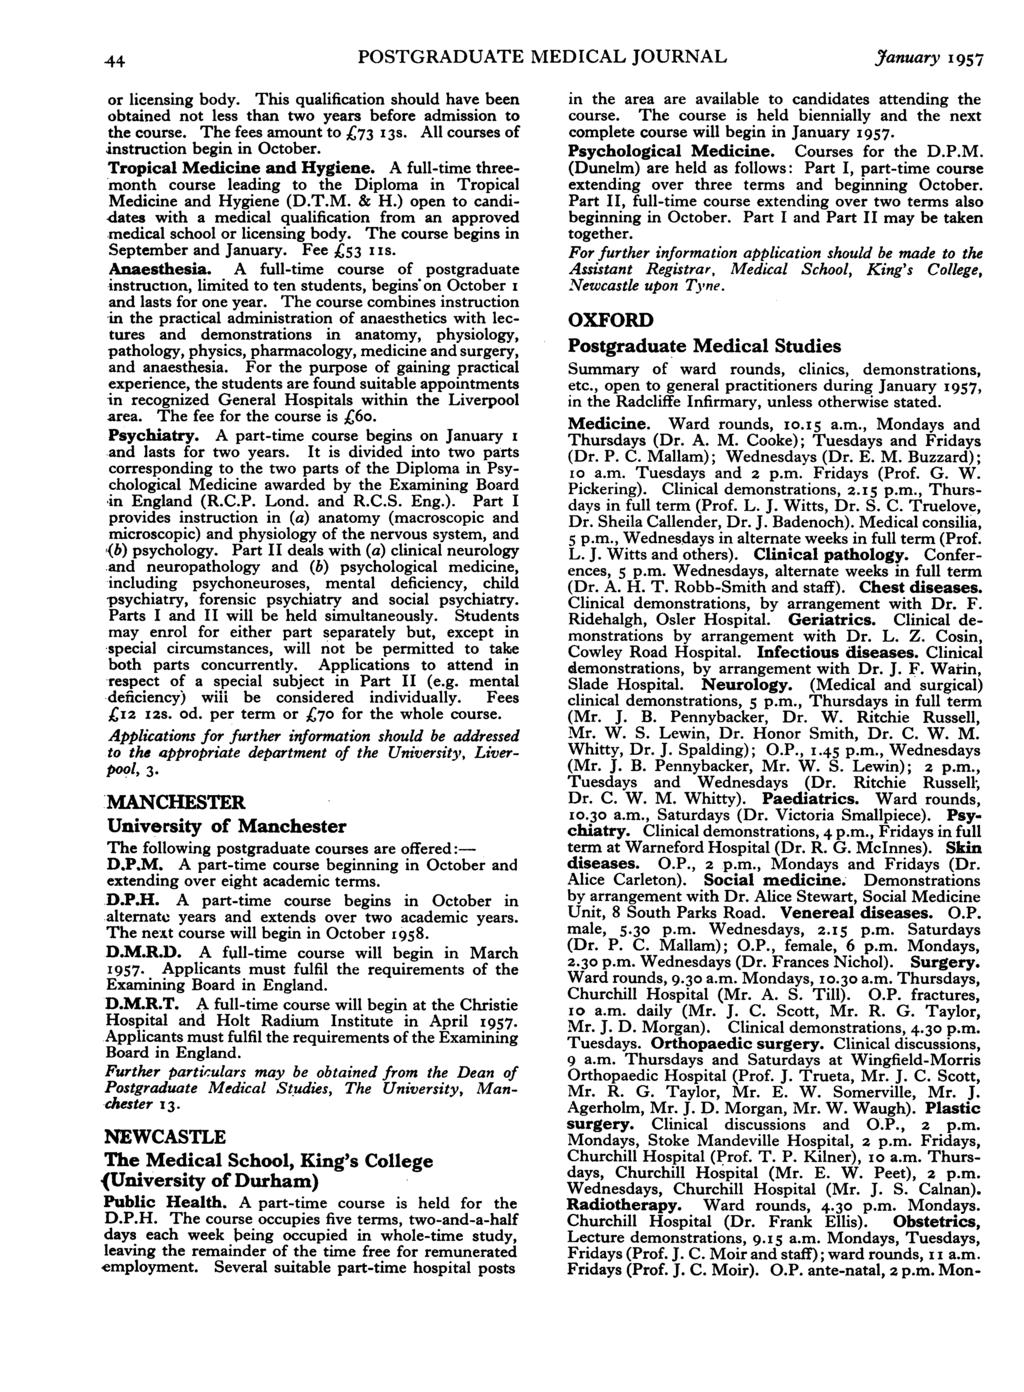 44 POSTGRADUATE MEDICAL JOURNAL January 1957 or licensing body. This qualification should have been obtained not less than two years before admission to the course. The fees amount to 73 13s.